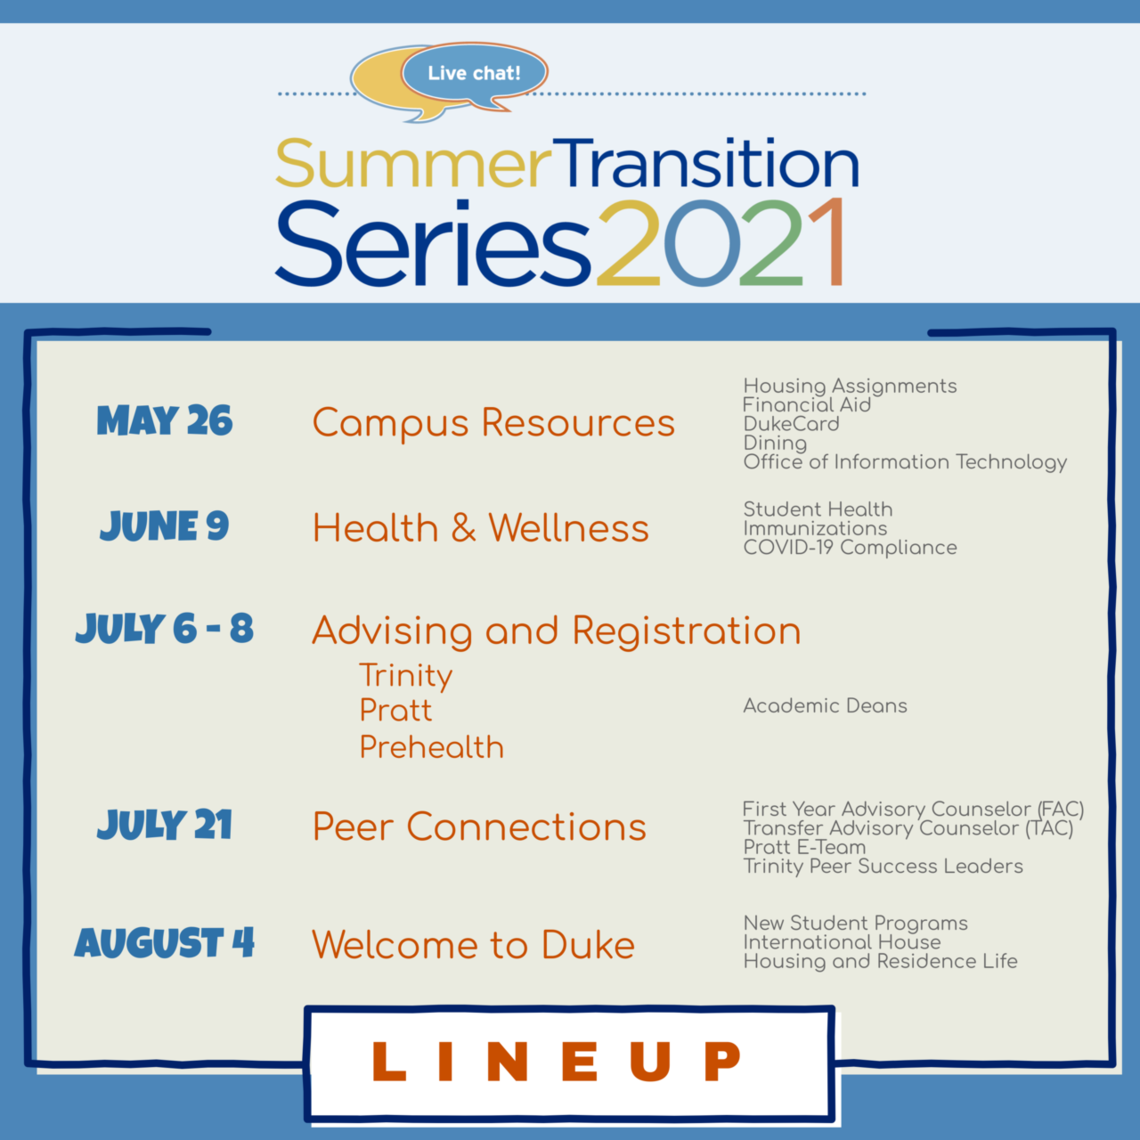 flyer with summer transition series 2021 logo and outlined schedule